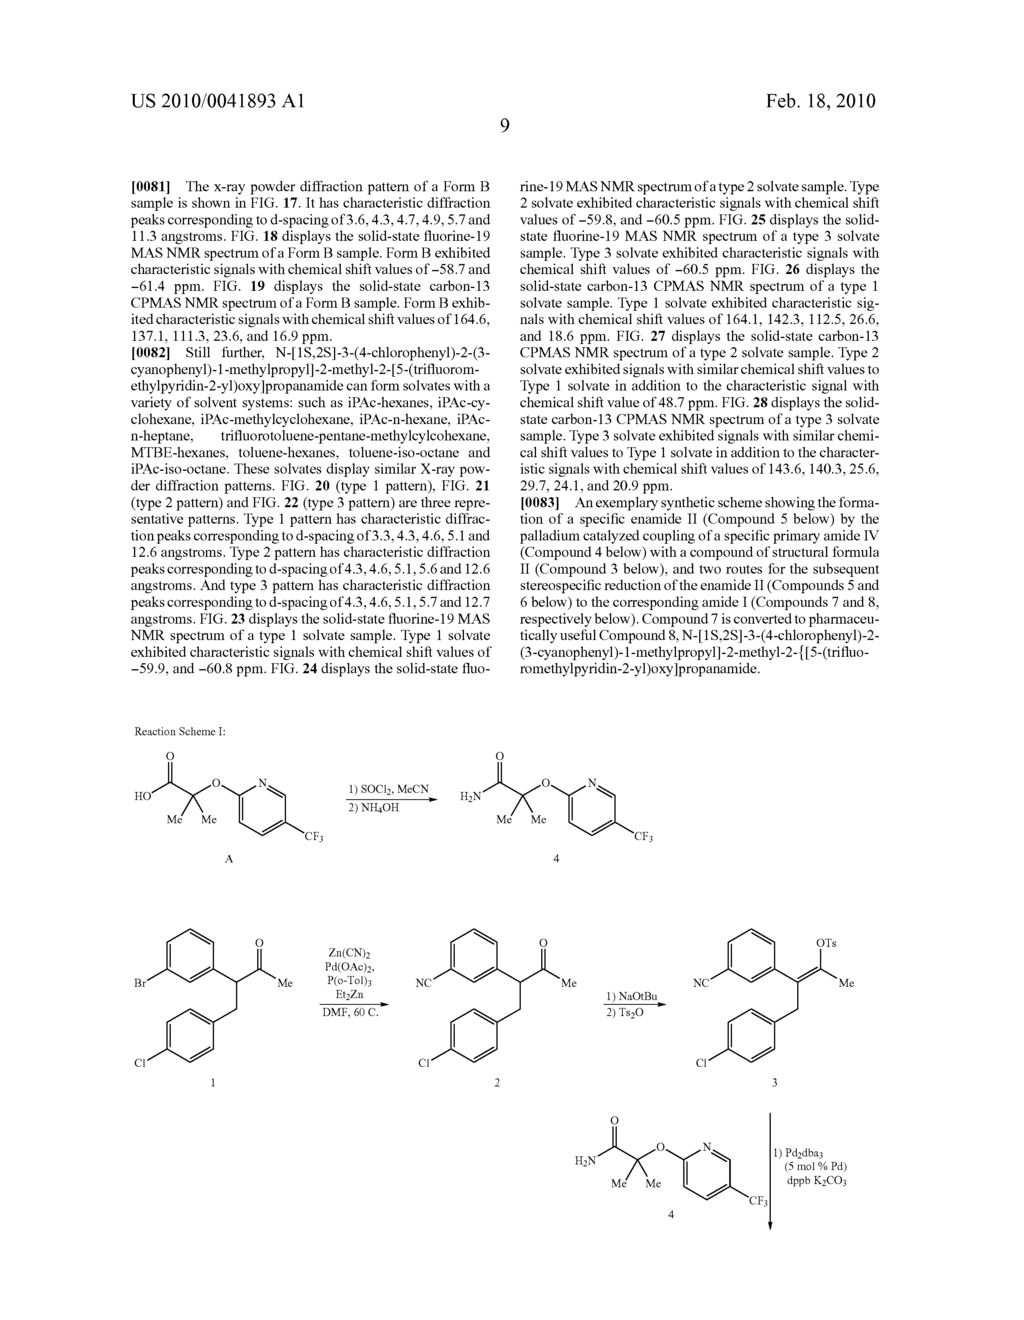 FORMATION OF TETRA-SUBSTITUTED ENAMIDES AND STEREOSELECTIVE REDUCTION THEREOF - diagram, schematic, and image 38